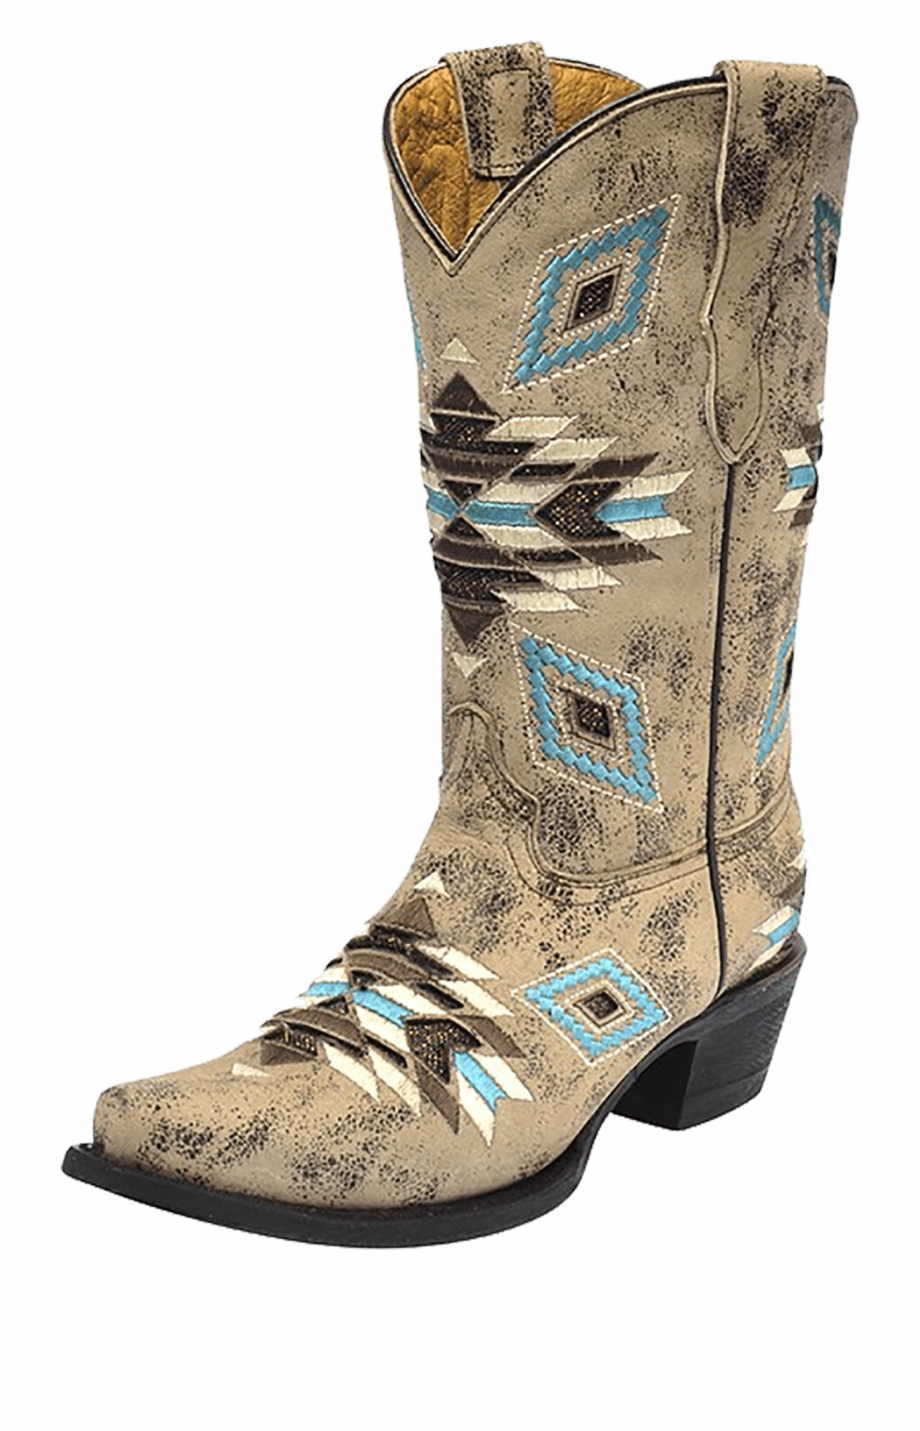 Kid's Corral Aztec Pattern Boot.